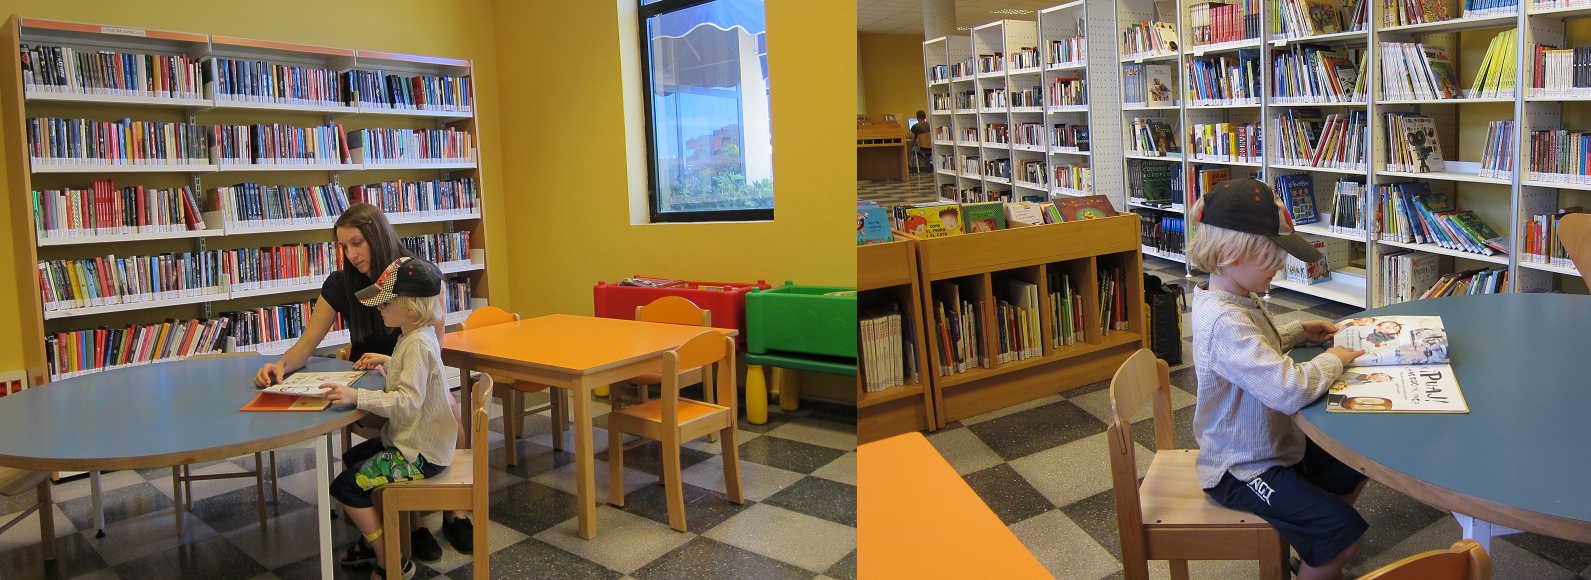 Library in Los Cristianos Tenerife. Visited in February 2014. Hidden behind an anonymous door in the cultural centre. Our son is a true library lover, so he did not want to leave this humble room. We wanted to move on to the beach, he wanted to read a picture book in spanish. http://www.boktipset.se/blogg/lottaslitteraturblogg/2014/03/06/man-vet-att-ungen-ar-son-till-en-bibliotekarie/